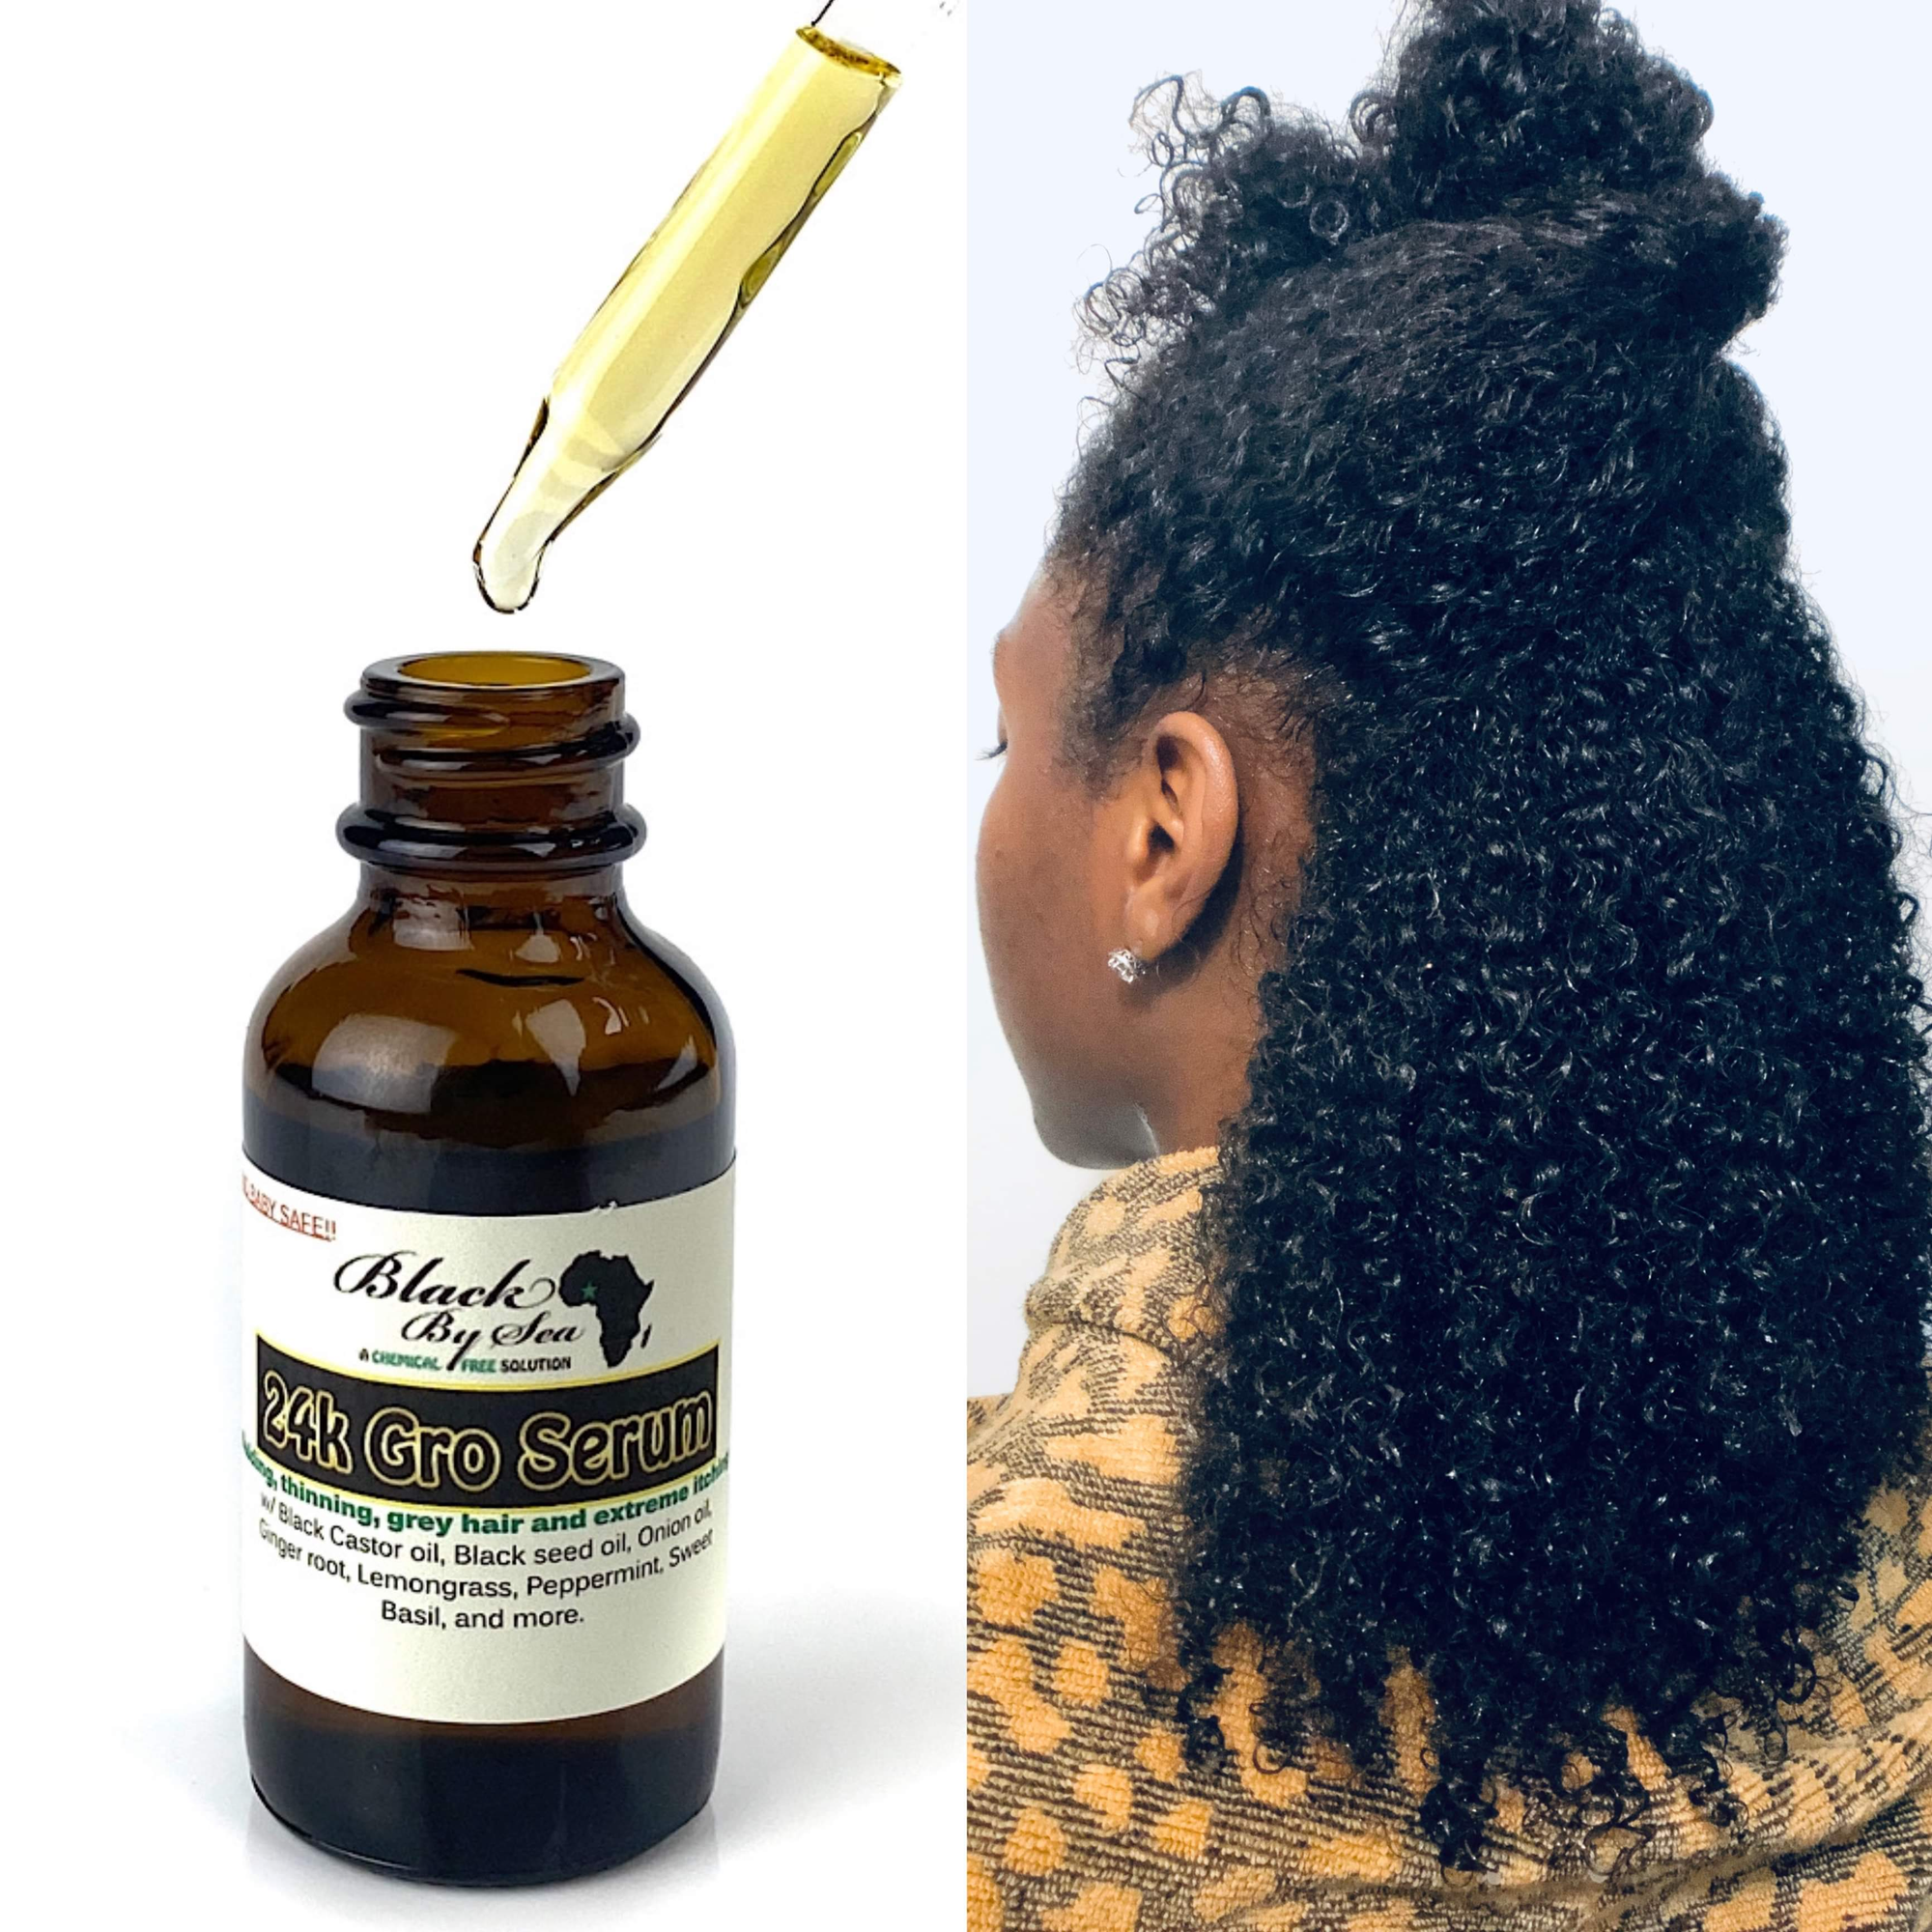 24K Gro Serum Thinning and Hair Loss Treatment - Blackbysea